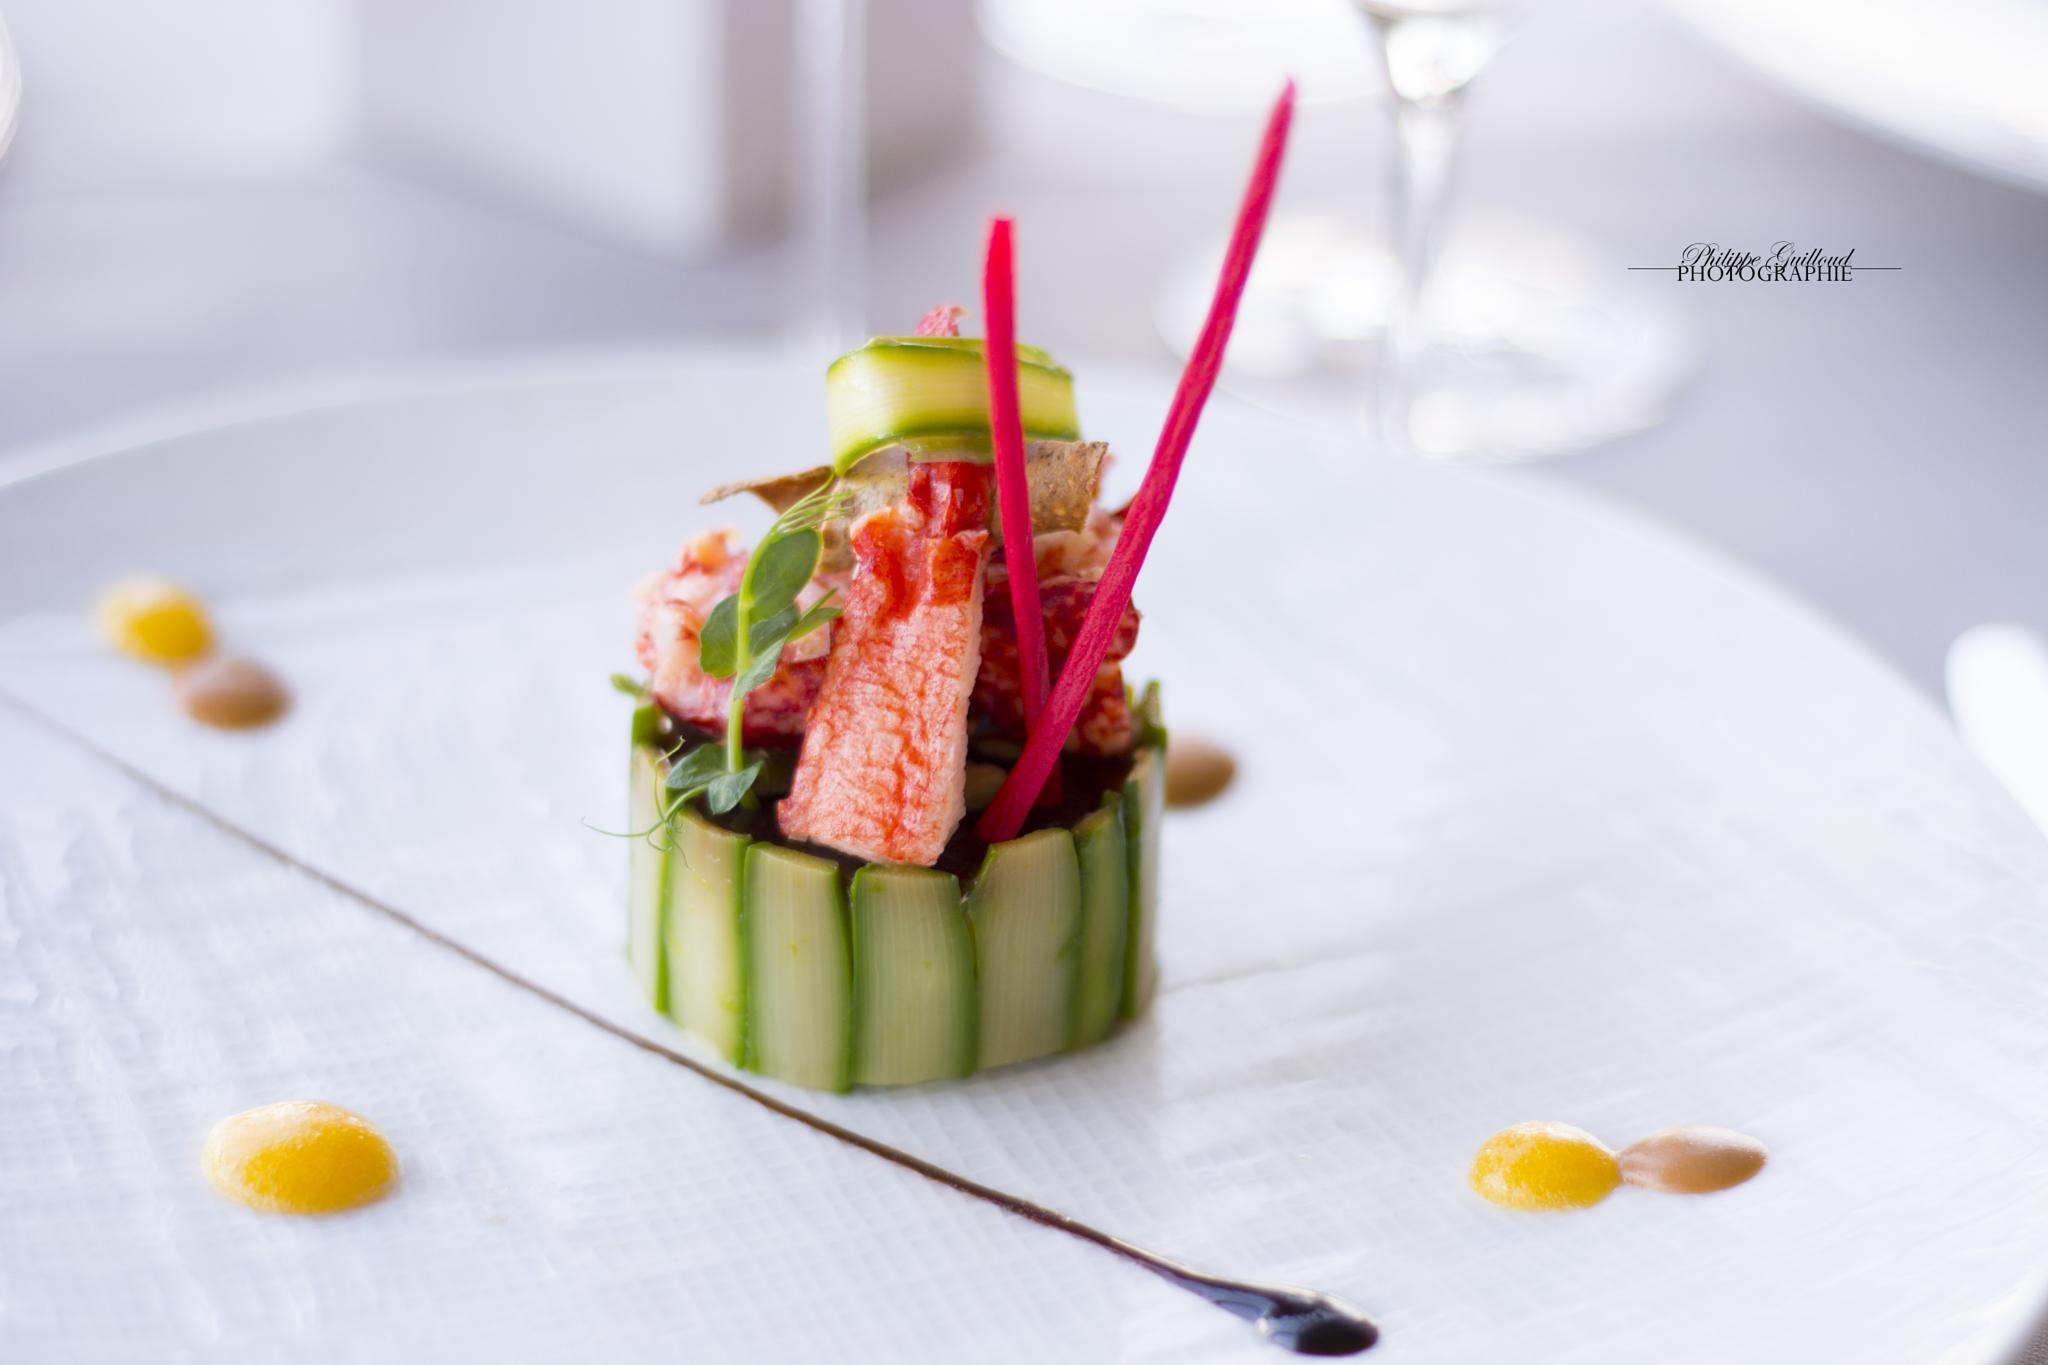 Cuisine by Philippe Guilloud